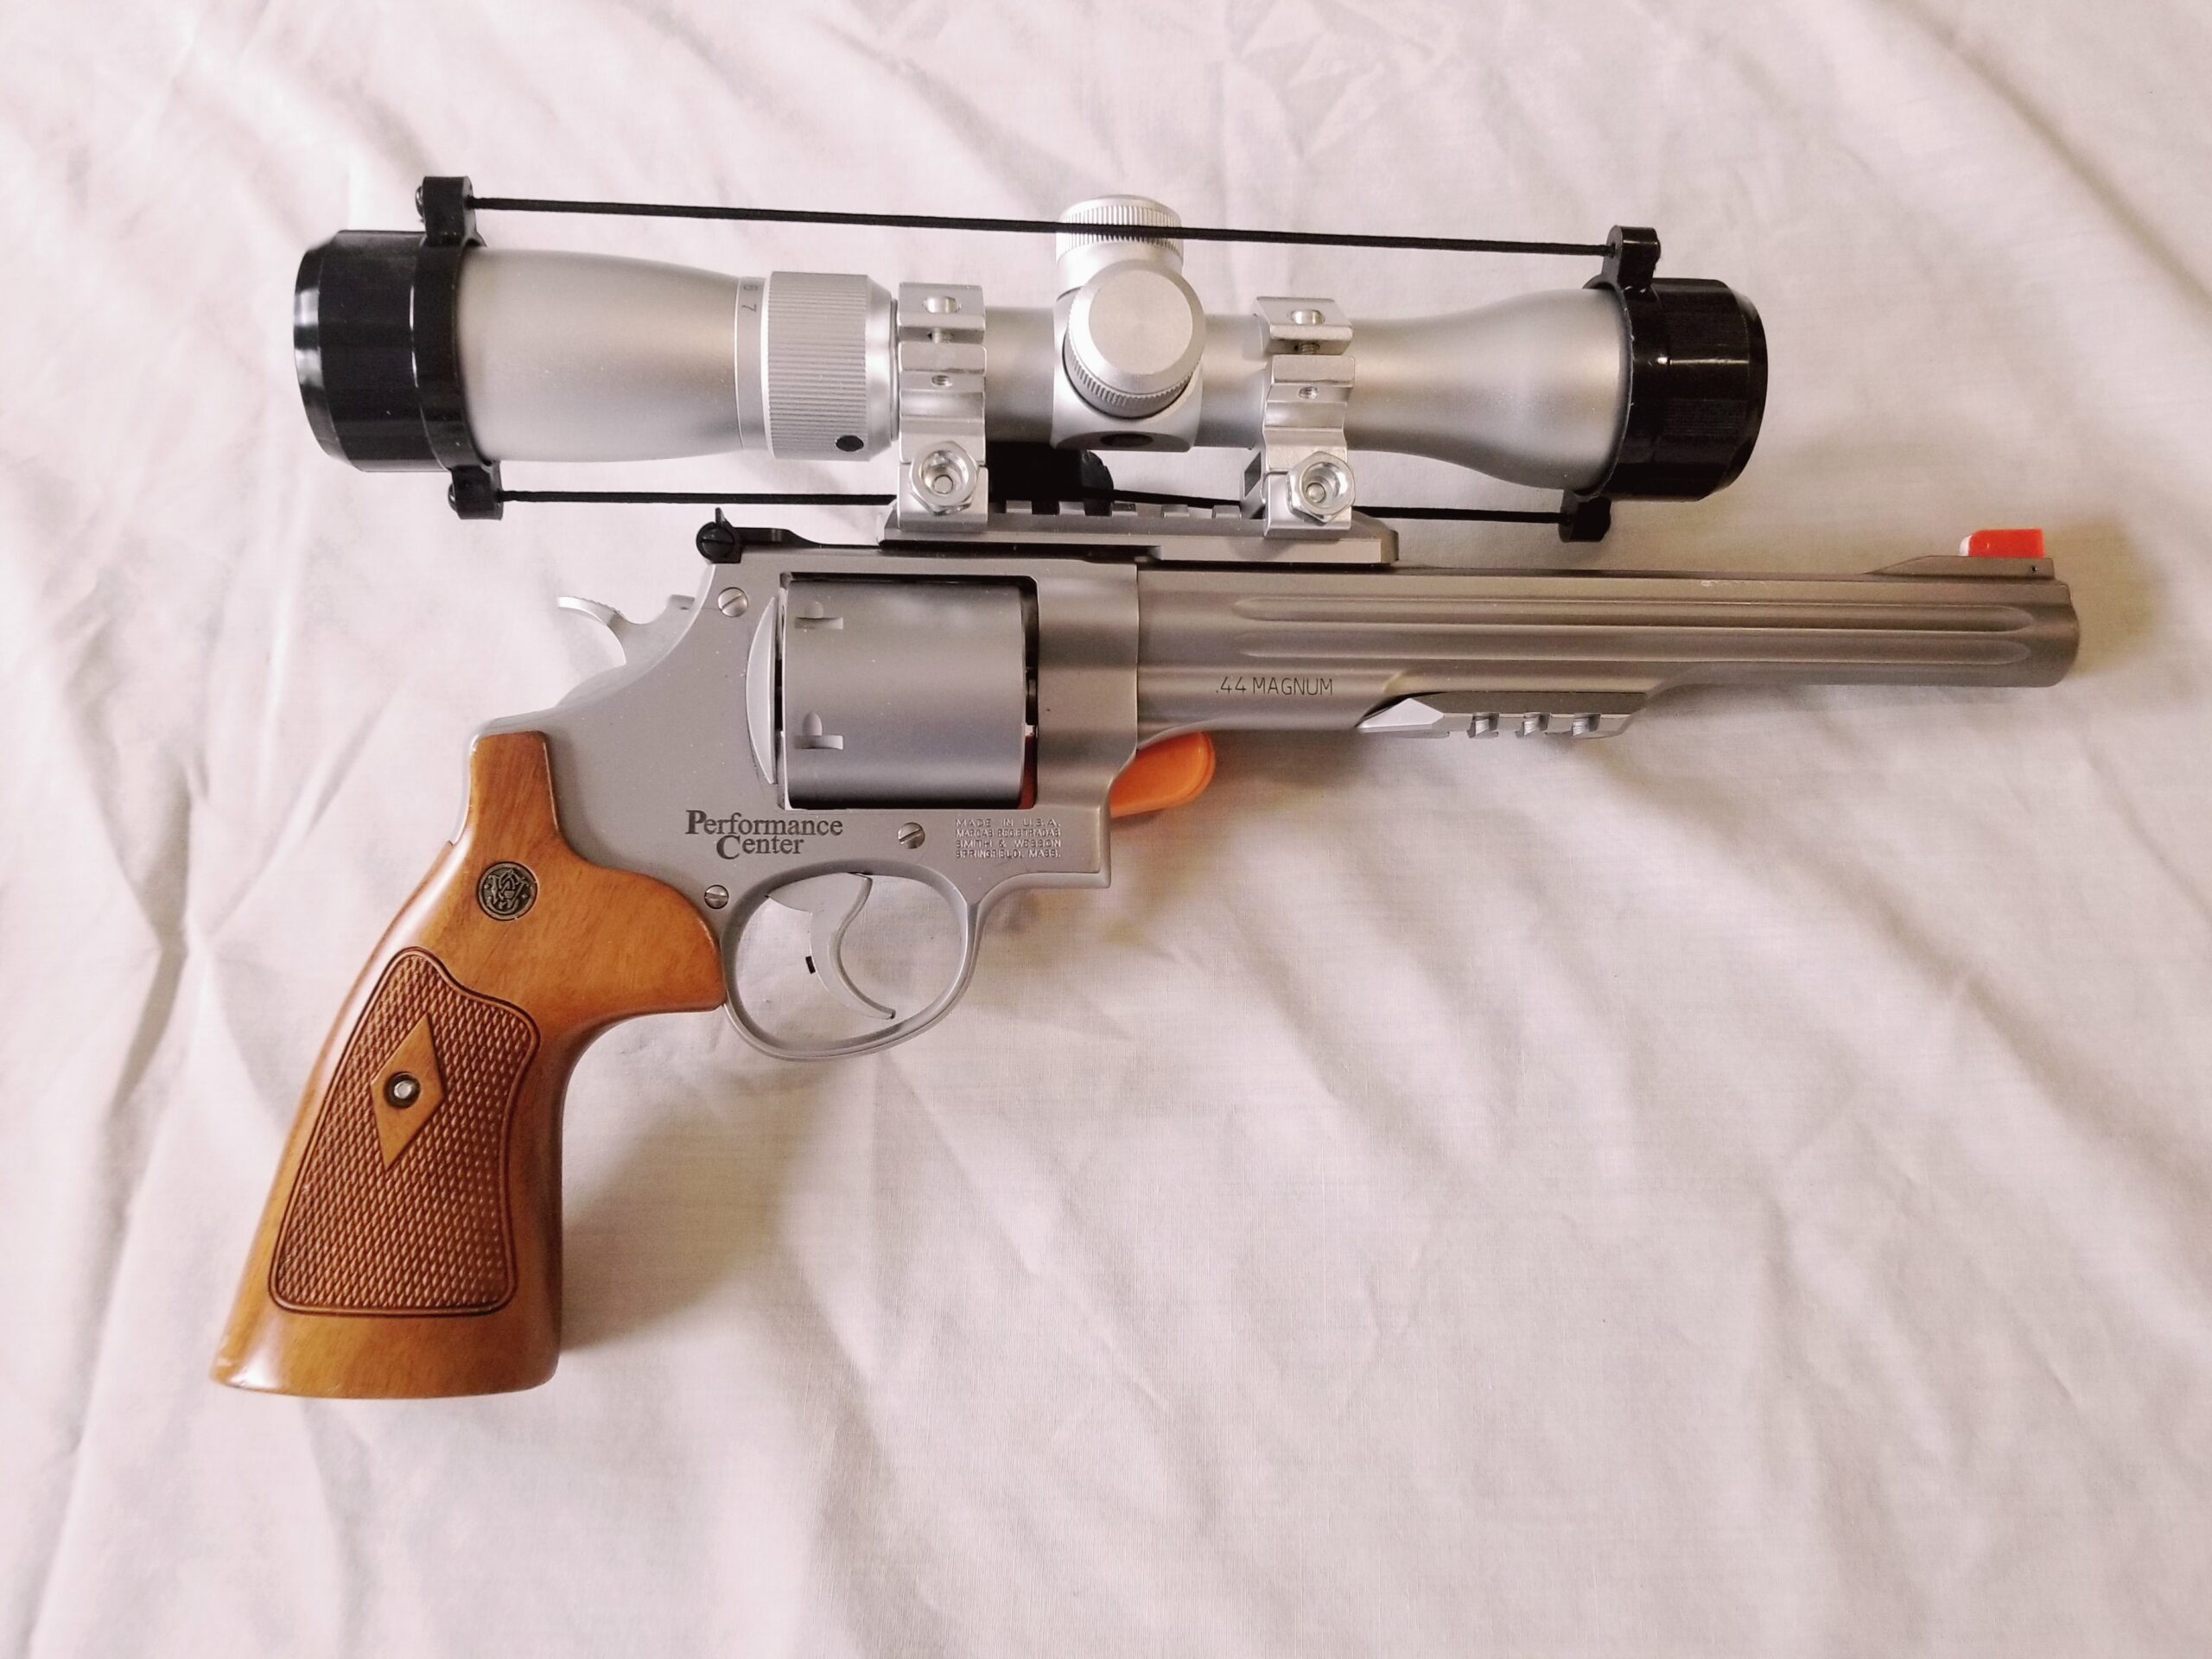 Smith & Wesson Performance Center Model 629-8 .44 Magnum